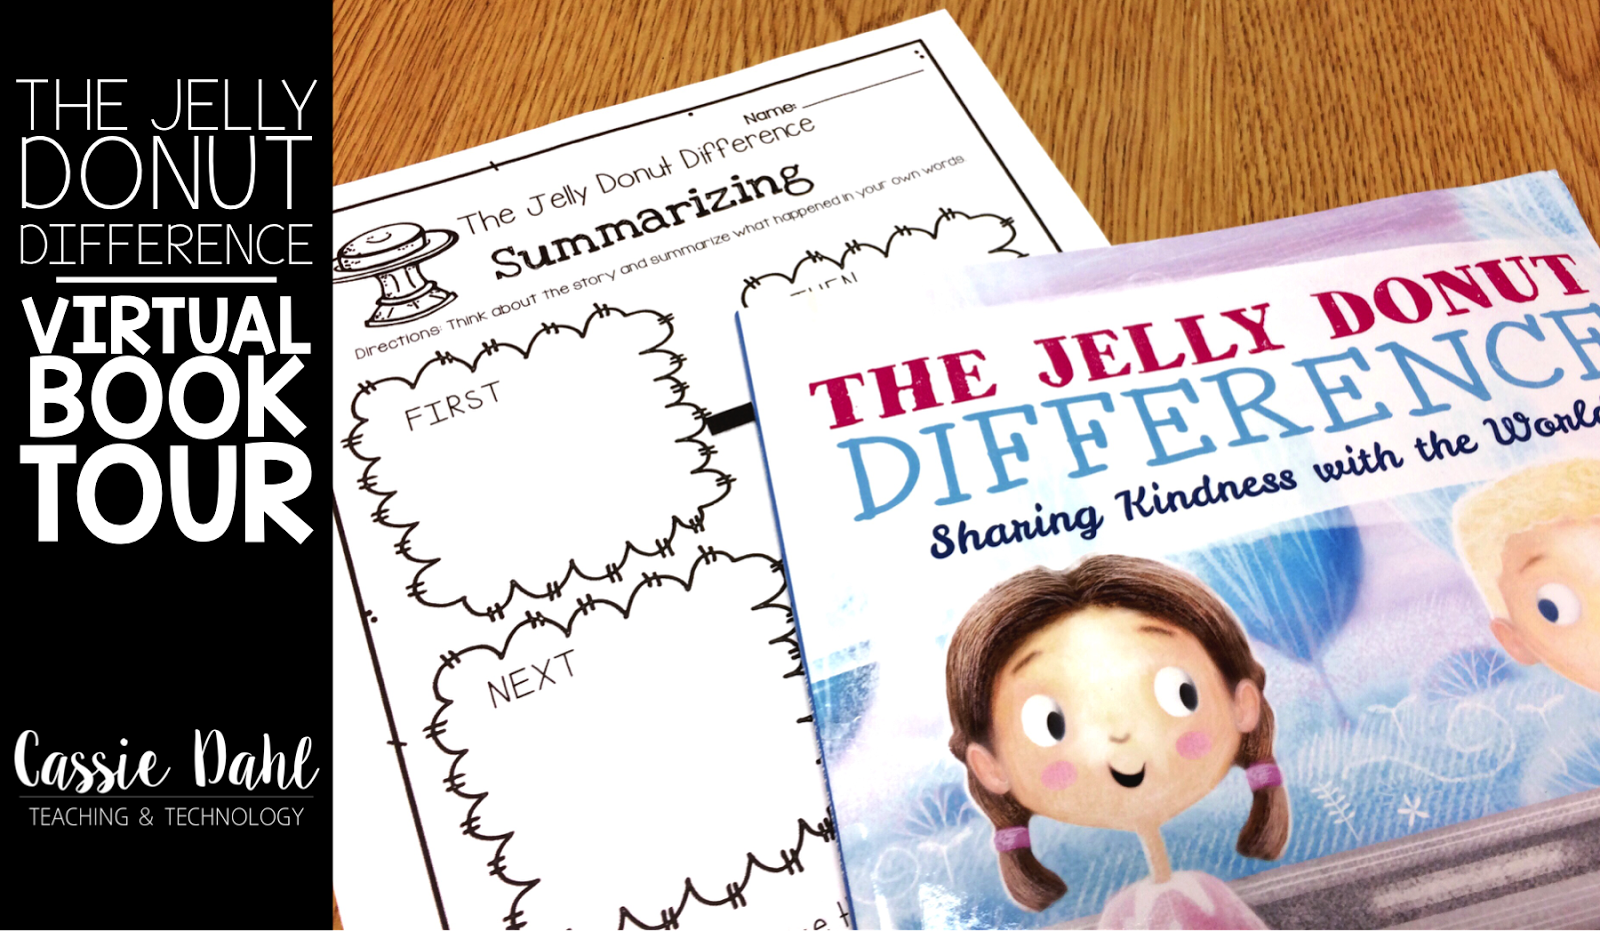 Using the picture book The Jelly Donut Difference to review sequencing and character traits!